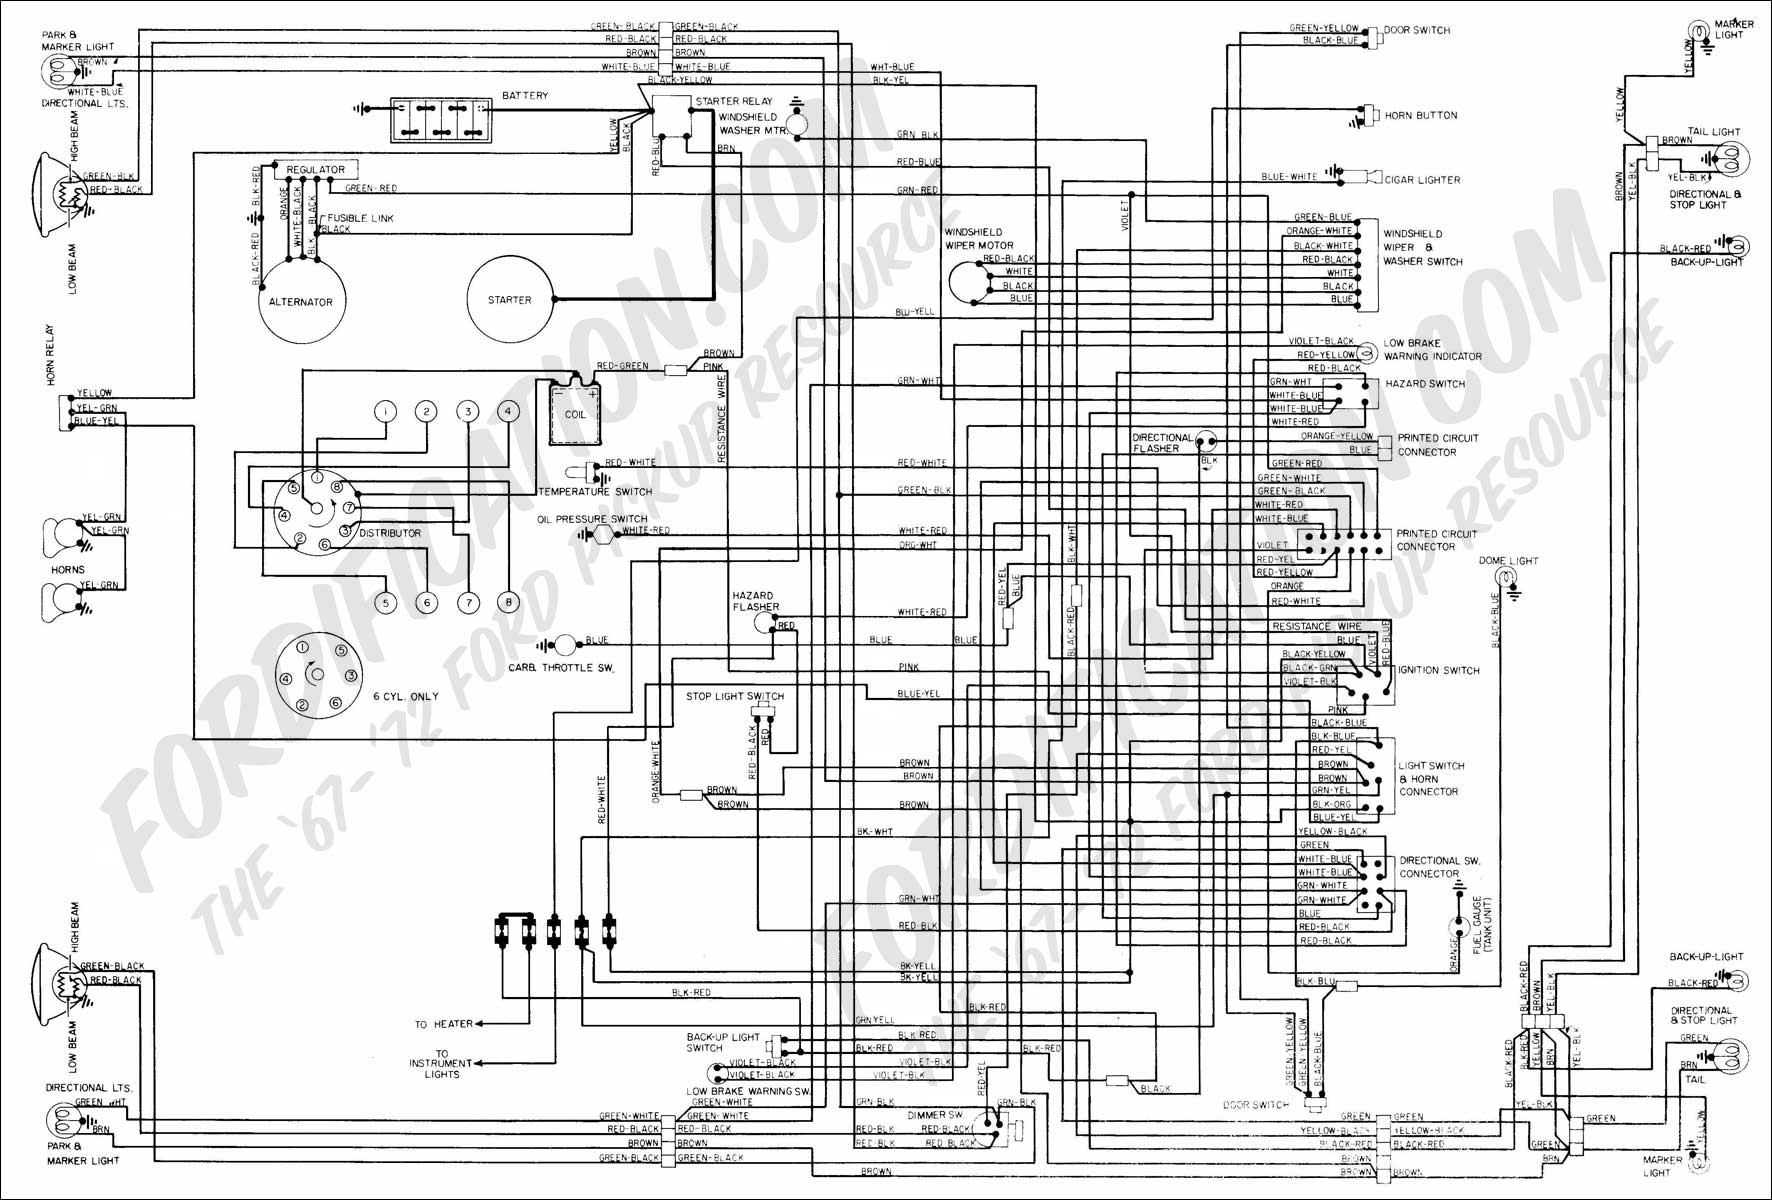 ford transit headlight wiring wiring diagram libraries1973 ranchero electrical wiring diagrams ford simple wiring diagramford wiring manuals schema wiring diagrams ford headlight